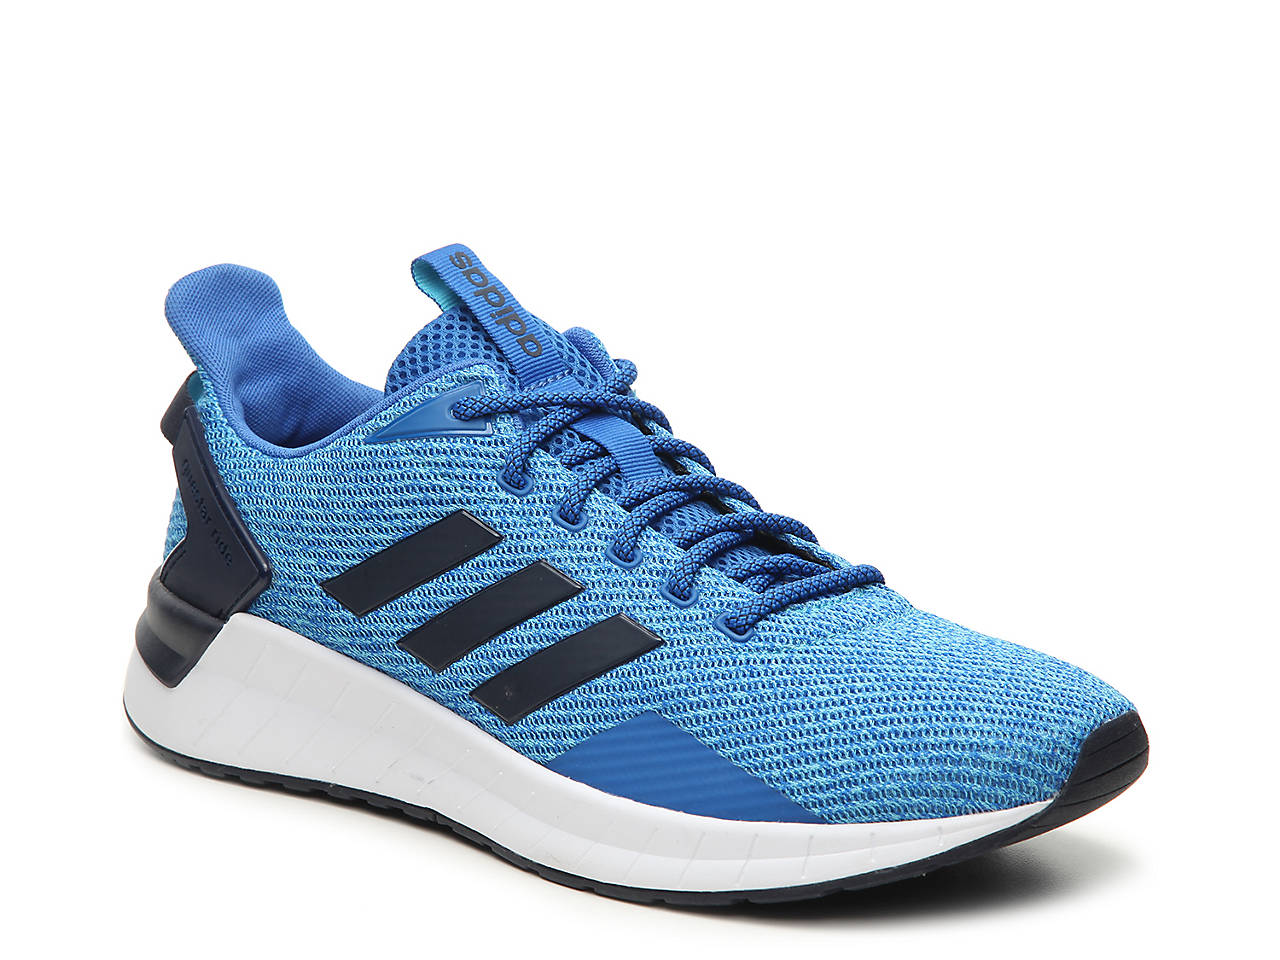 competitive price 4a8d7 2b930 adidas. Questar Ride Running Shoe - Men s